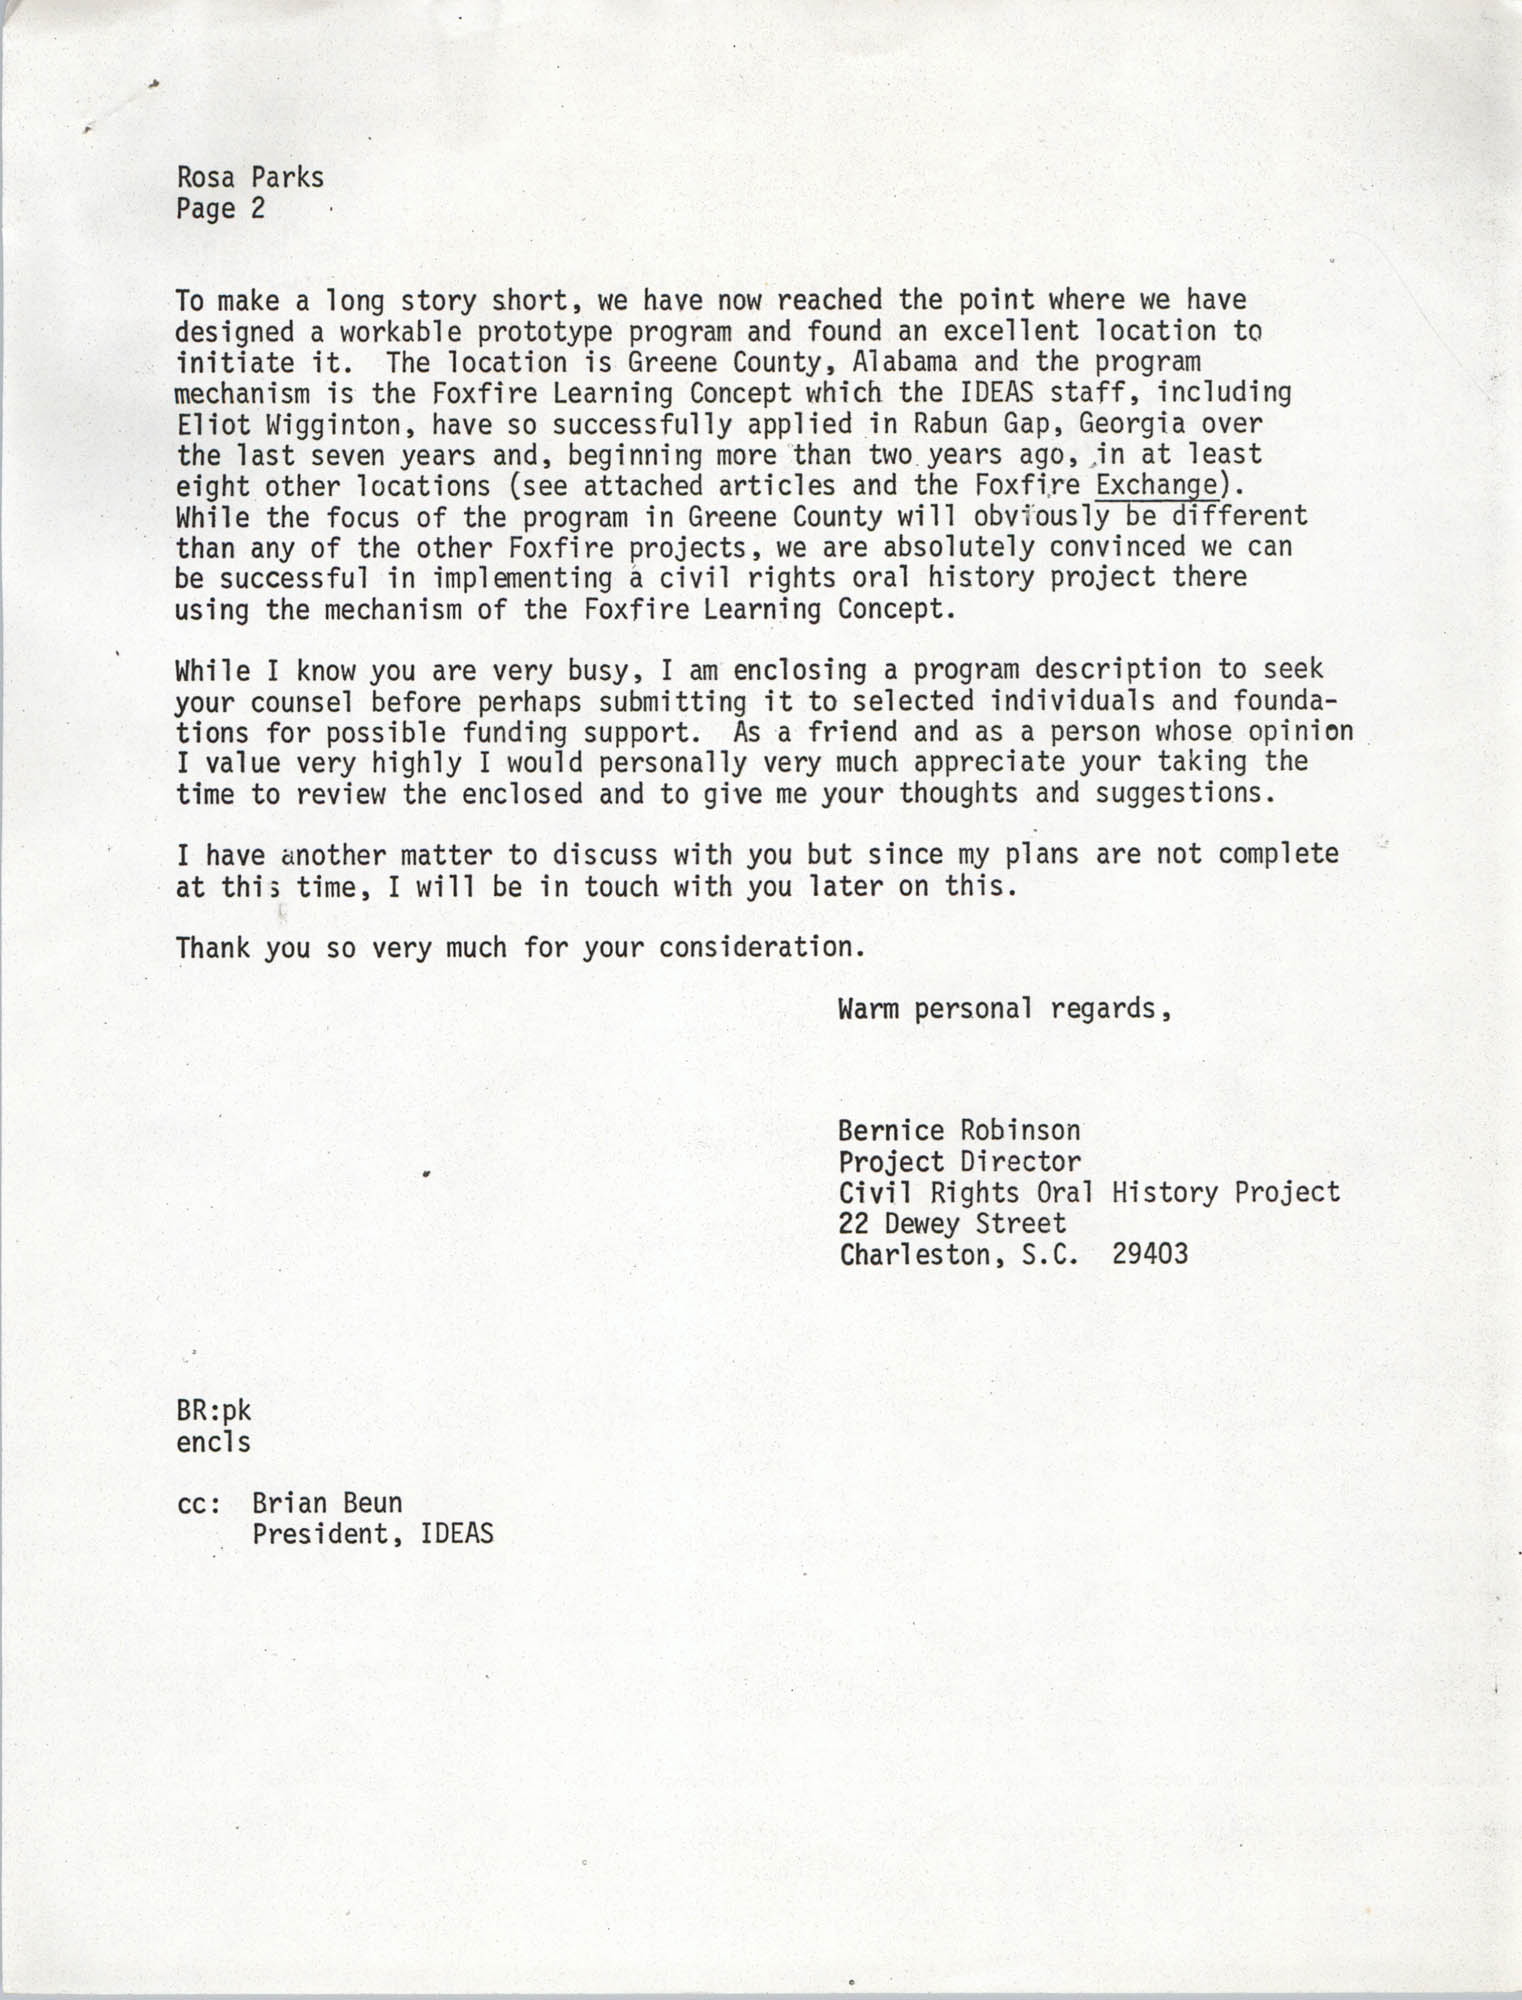 Letter from Bernice Robinson to Rosa Parks, May 8, 1973, Page 2